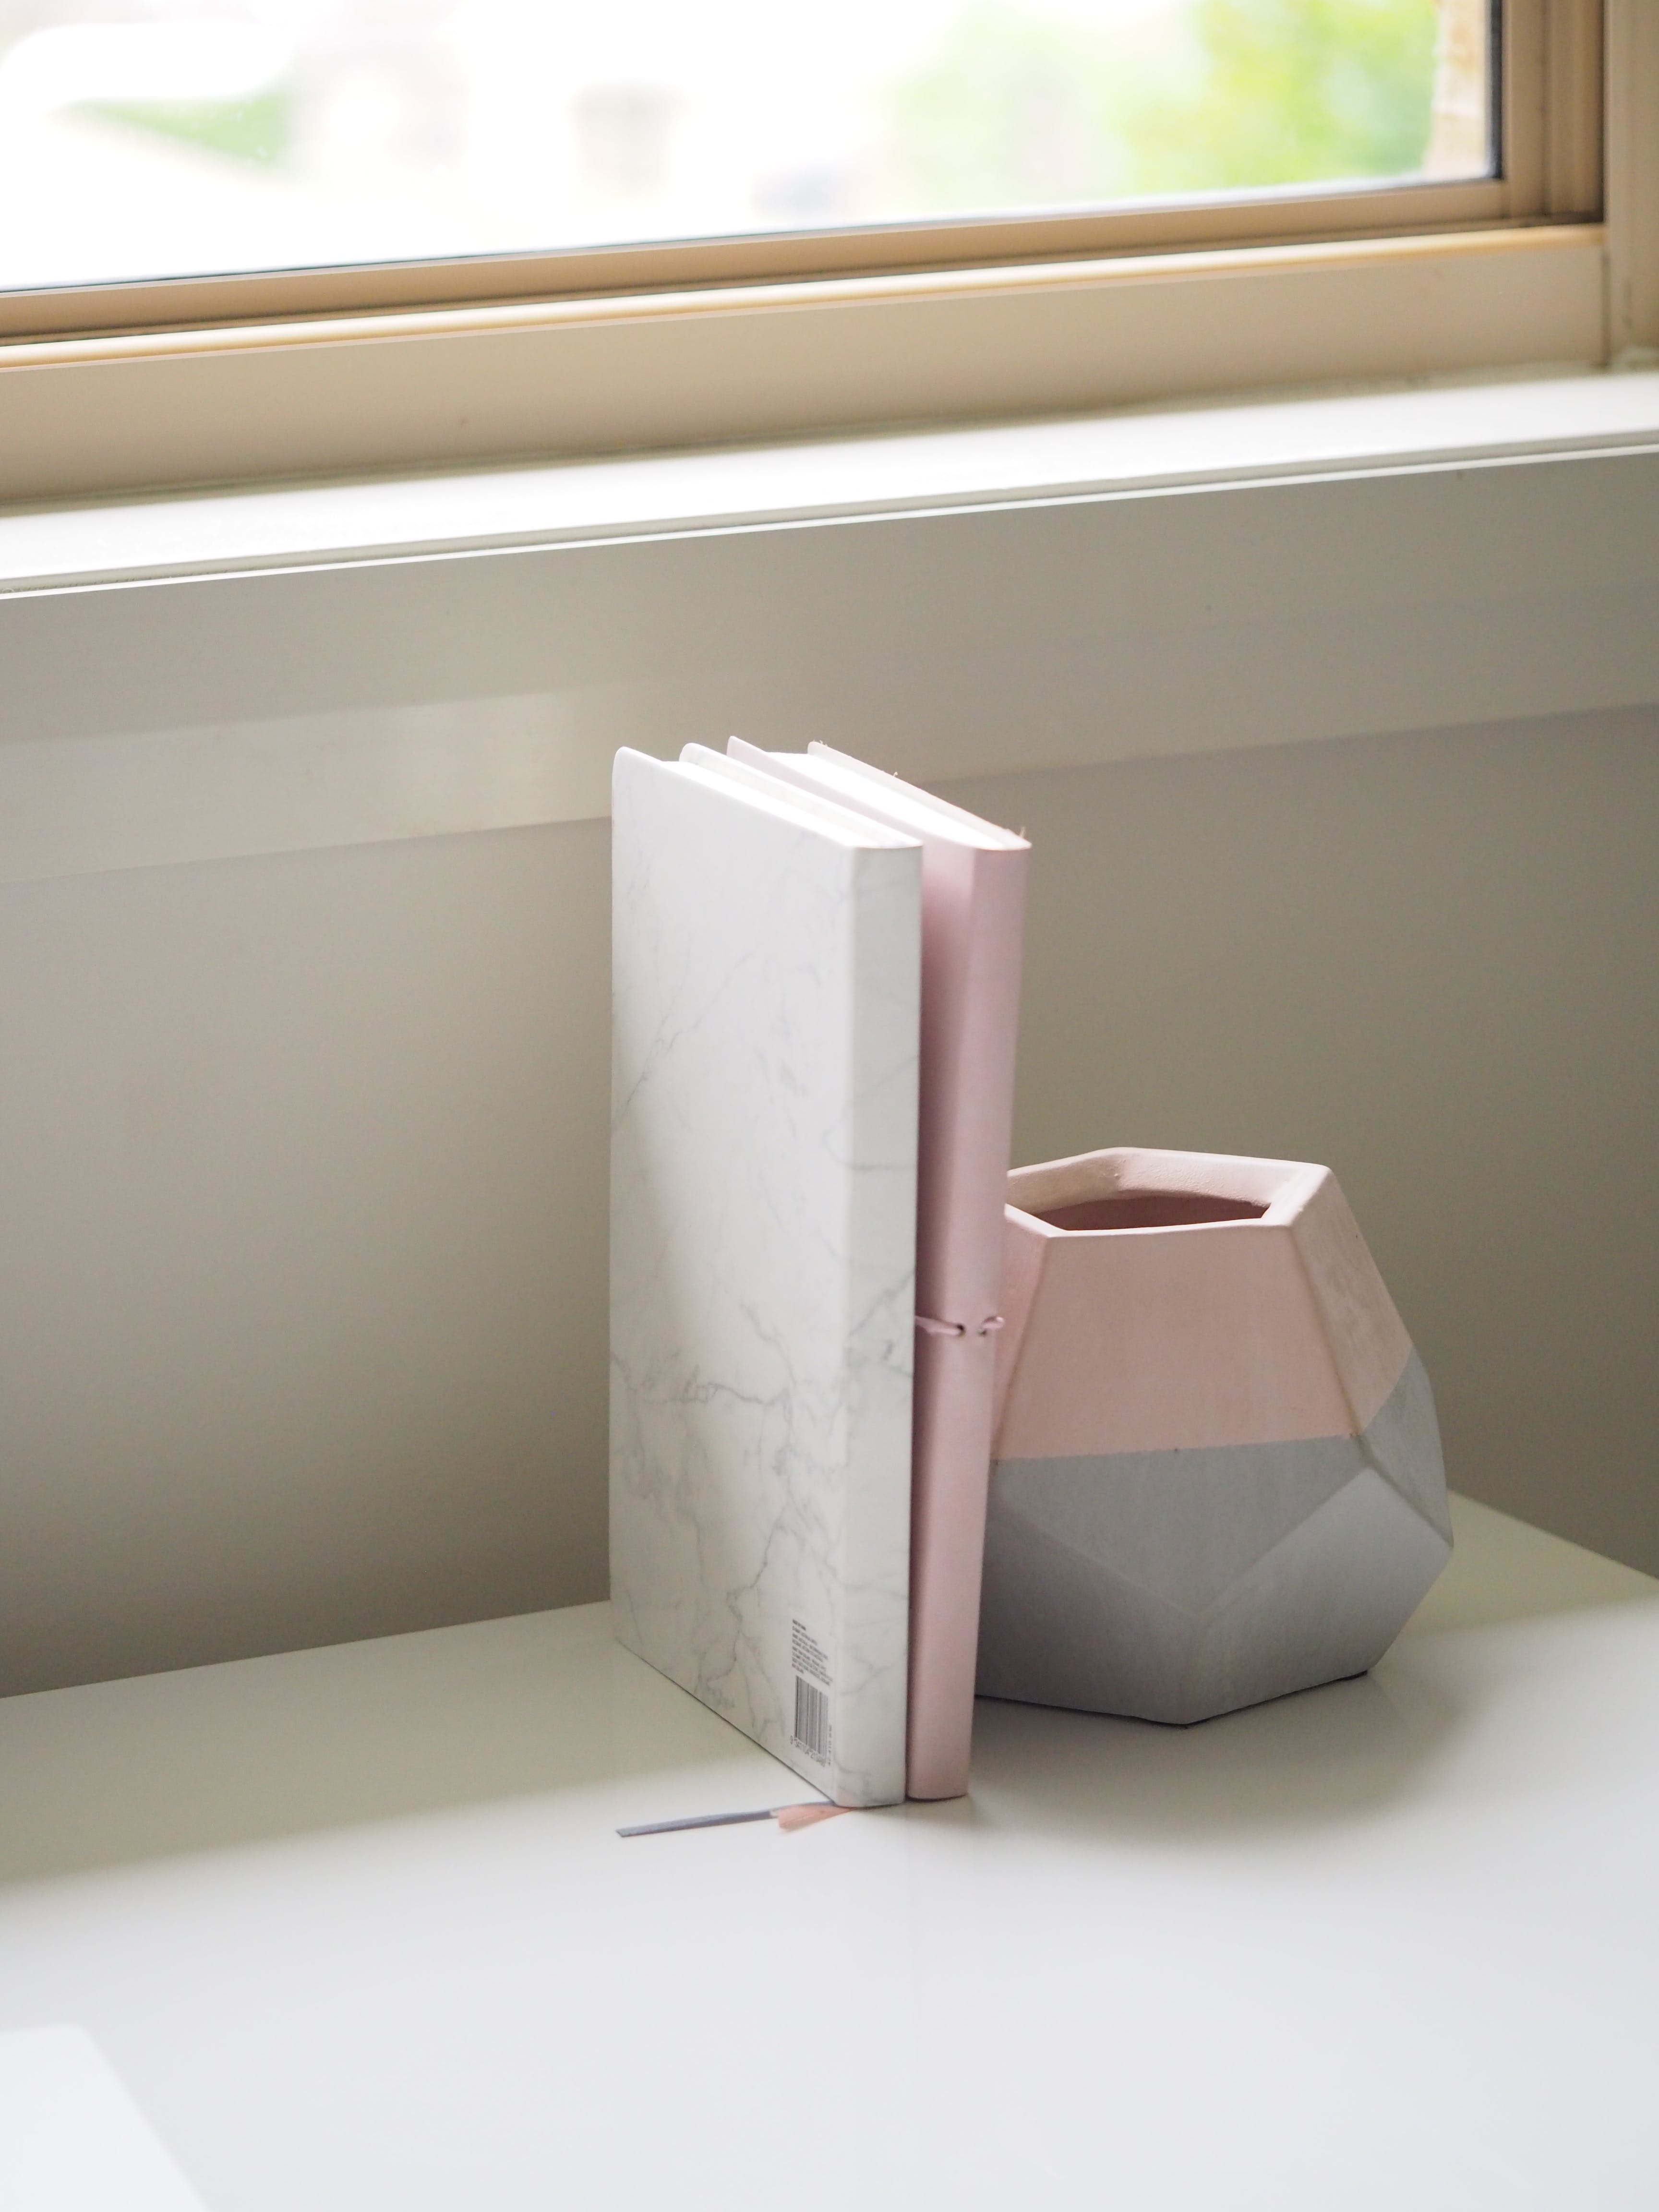 White and Pink Books Piled Beside Pink and Gray Ceramic Vase